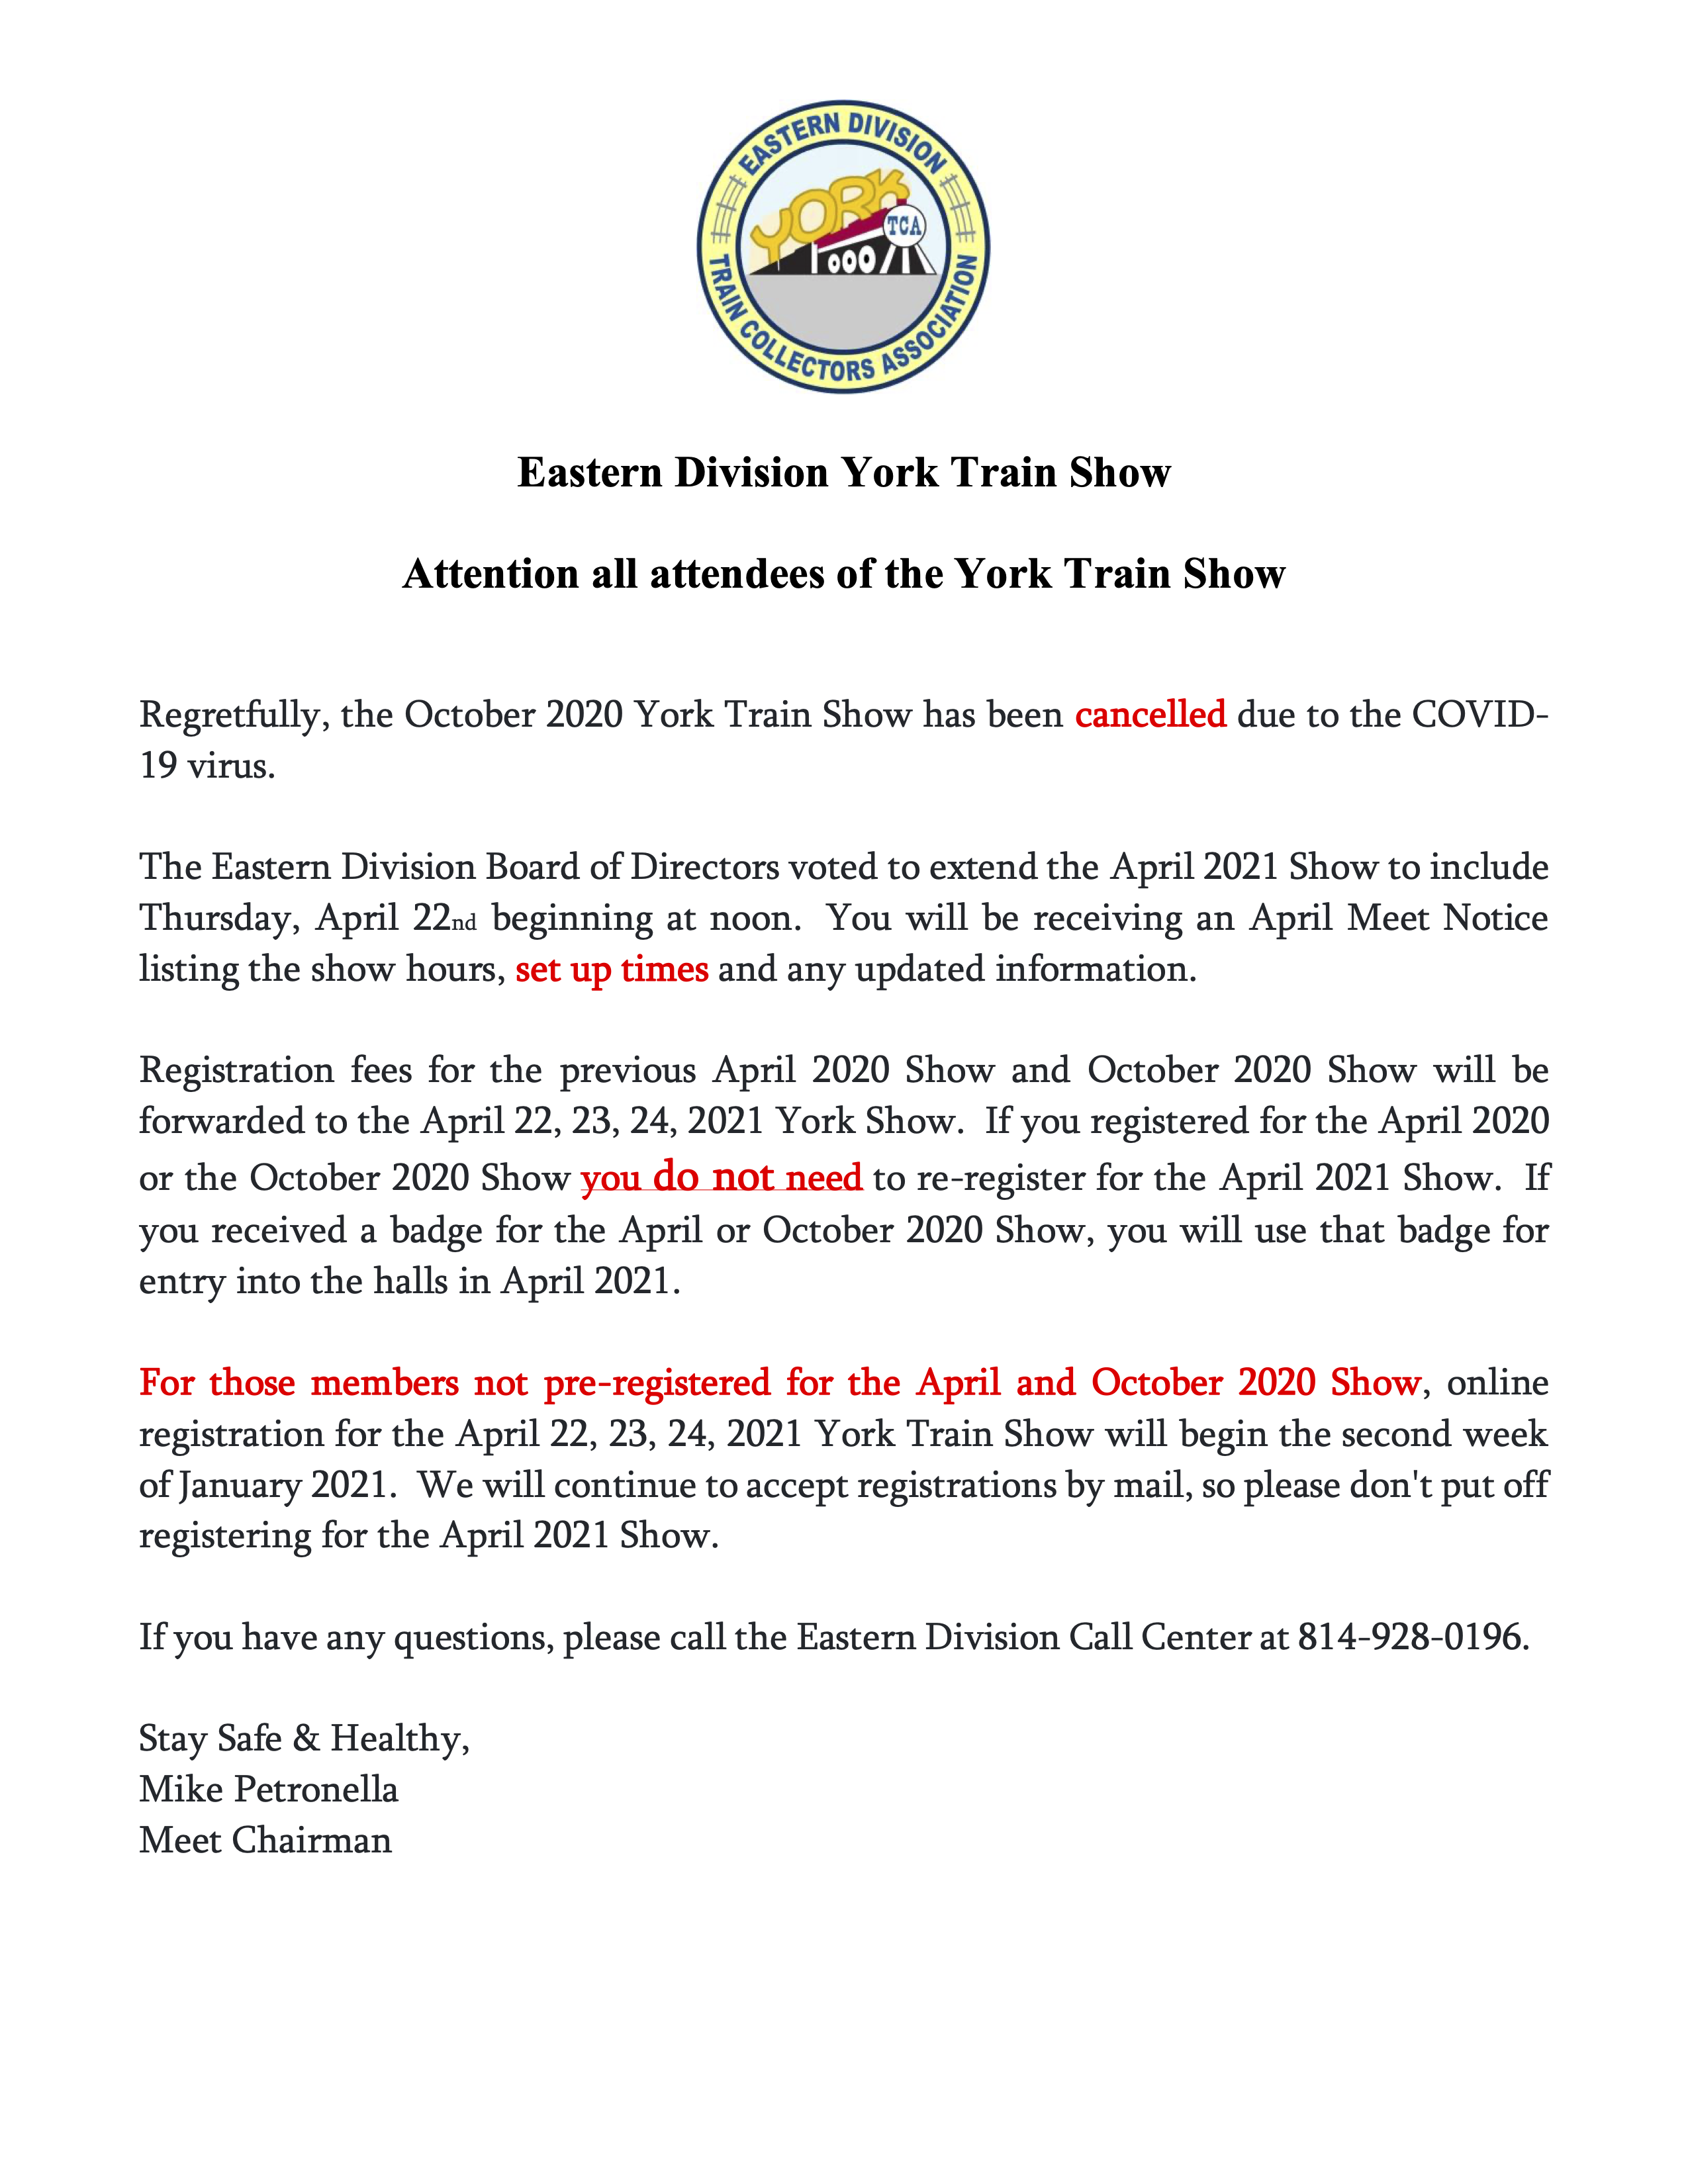 Eastern Division York Train Show Update